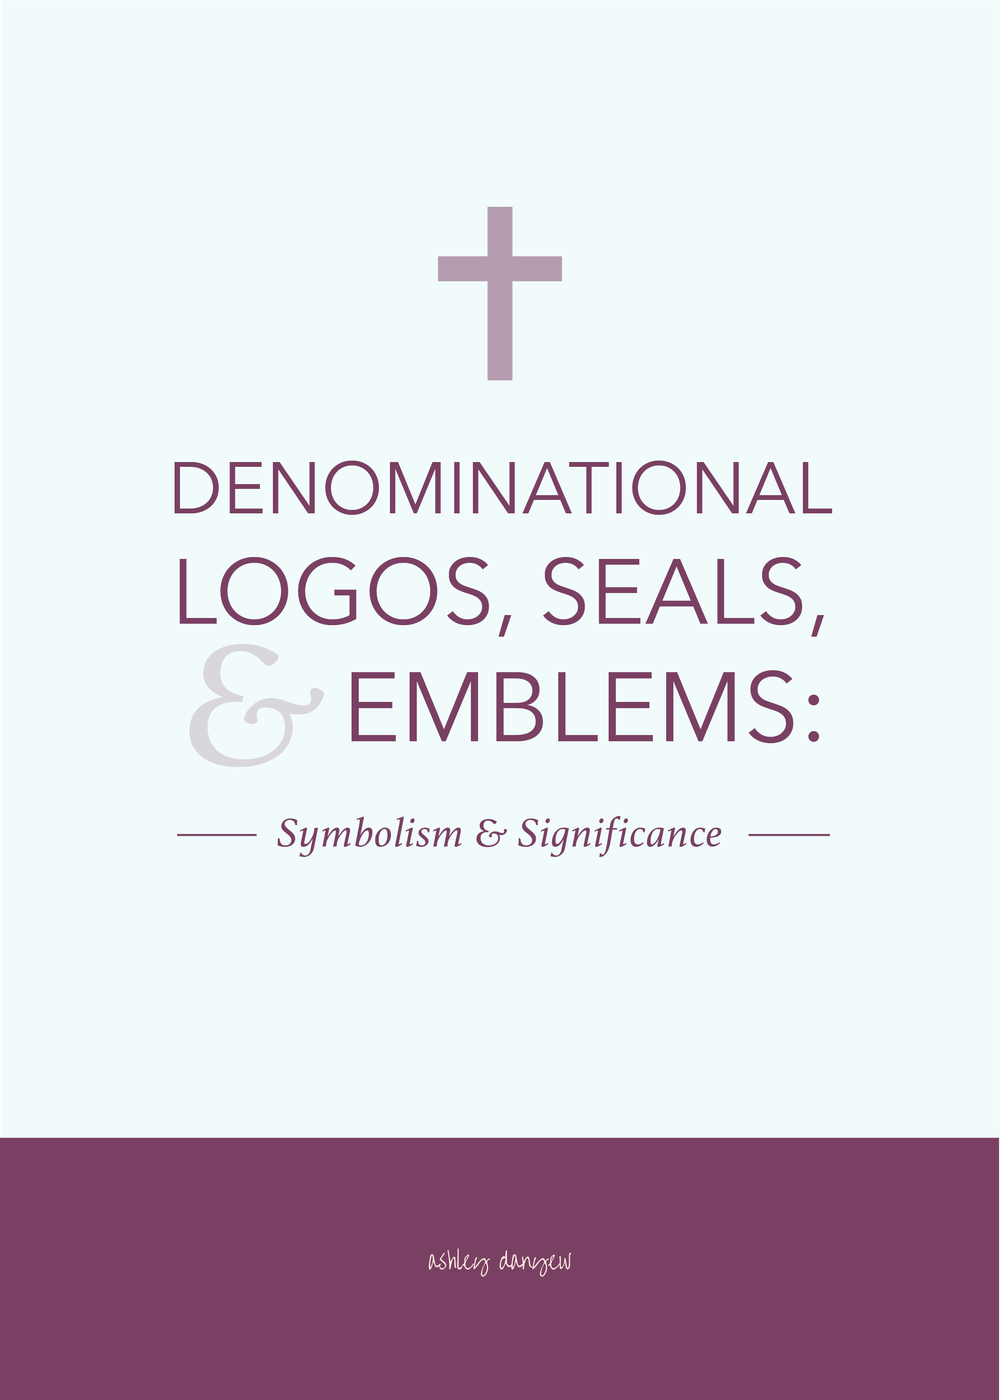 Copy of Denominational Logos, Seals, and Emblems - Symbolism and Significance